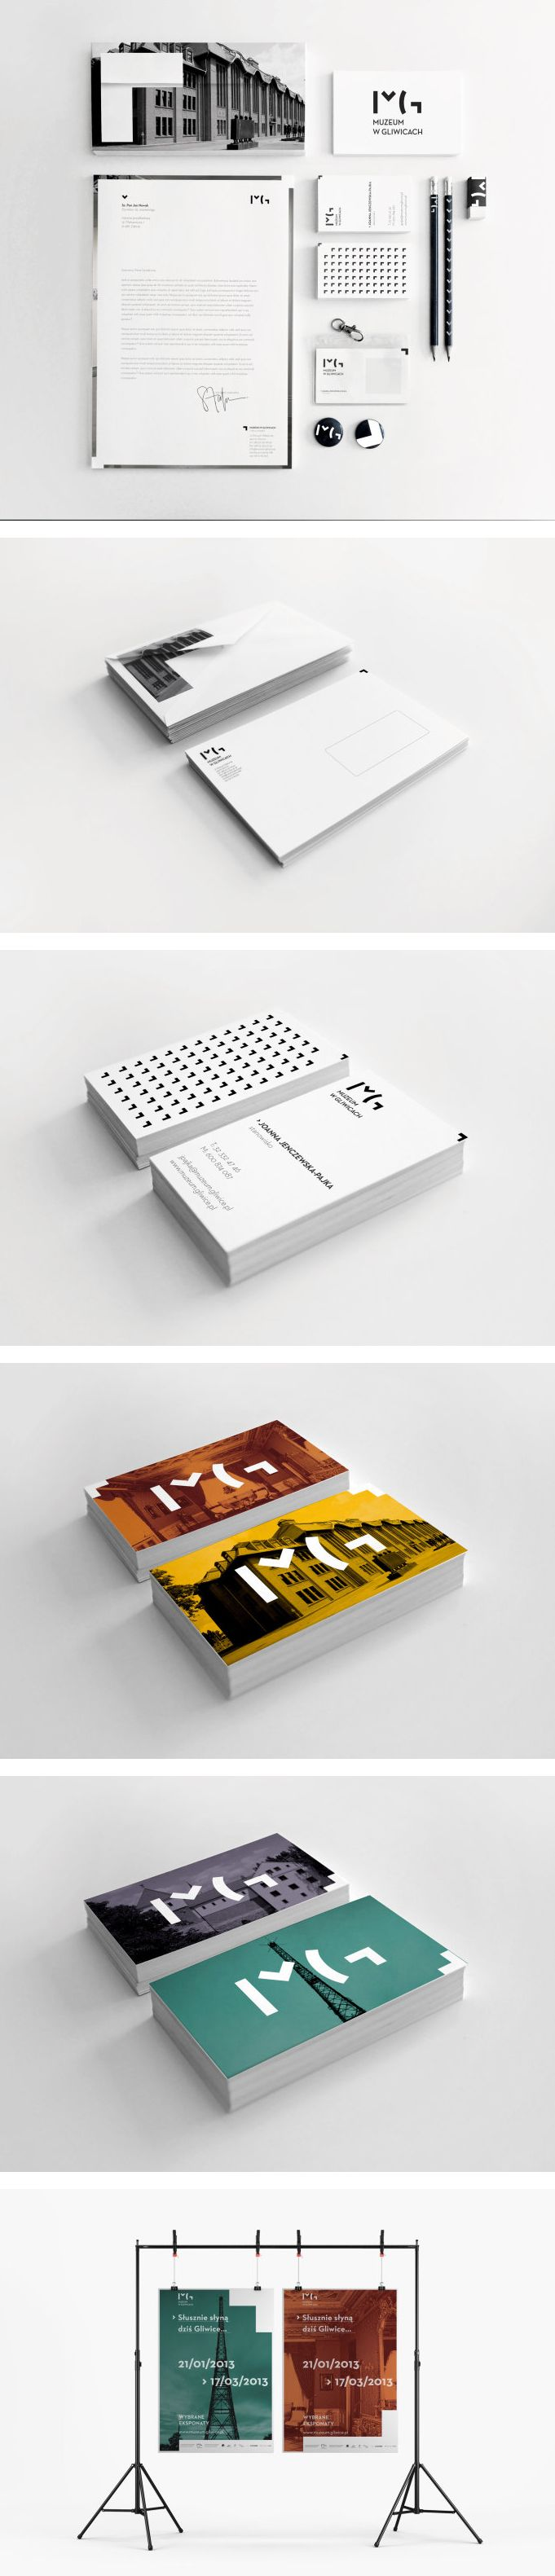 Gliwice Museum Visual Recognition | #stationary #corporate #design #corporatedesign #logo #identity #branding #marketing <<< repinned by an #advertising agency from #Hamburg / #Germany - www.BlickeDeeler.de | Follow us on www.facebook.com/BlickeDeeler